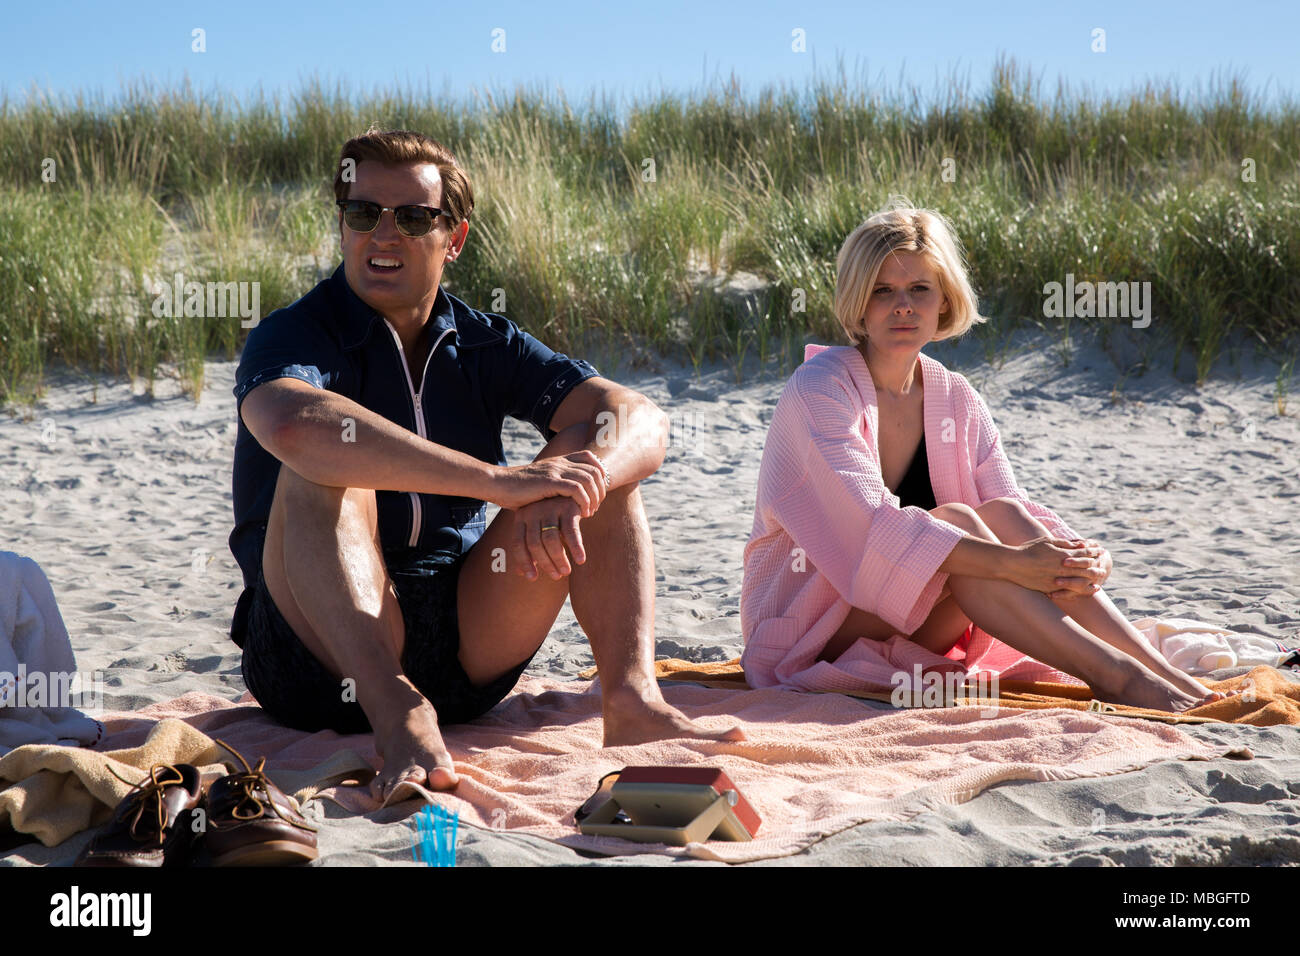 Ted Image Stock Photos & Ted Image Stock Images - Page 2 - Alamy